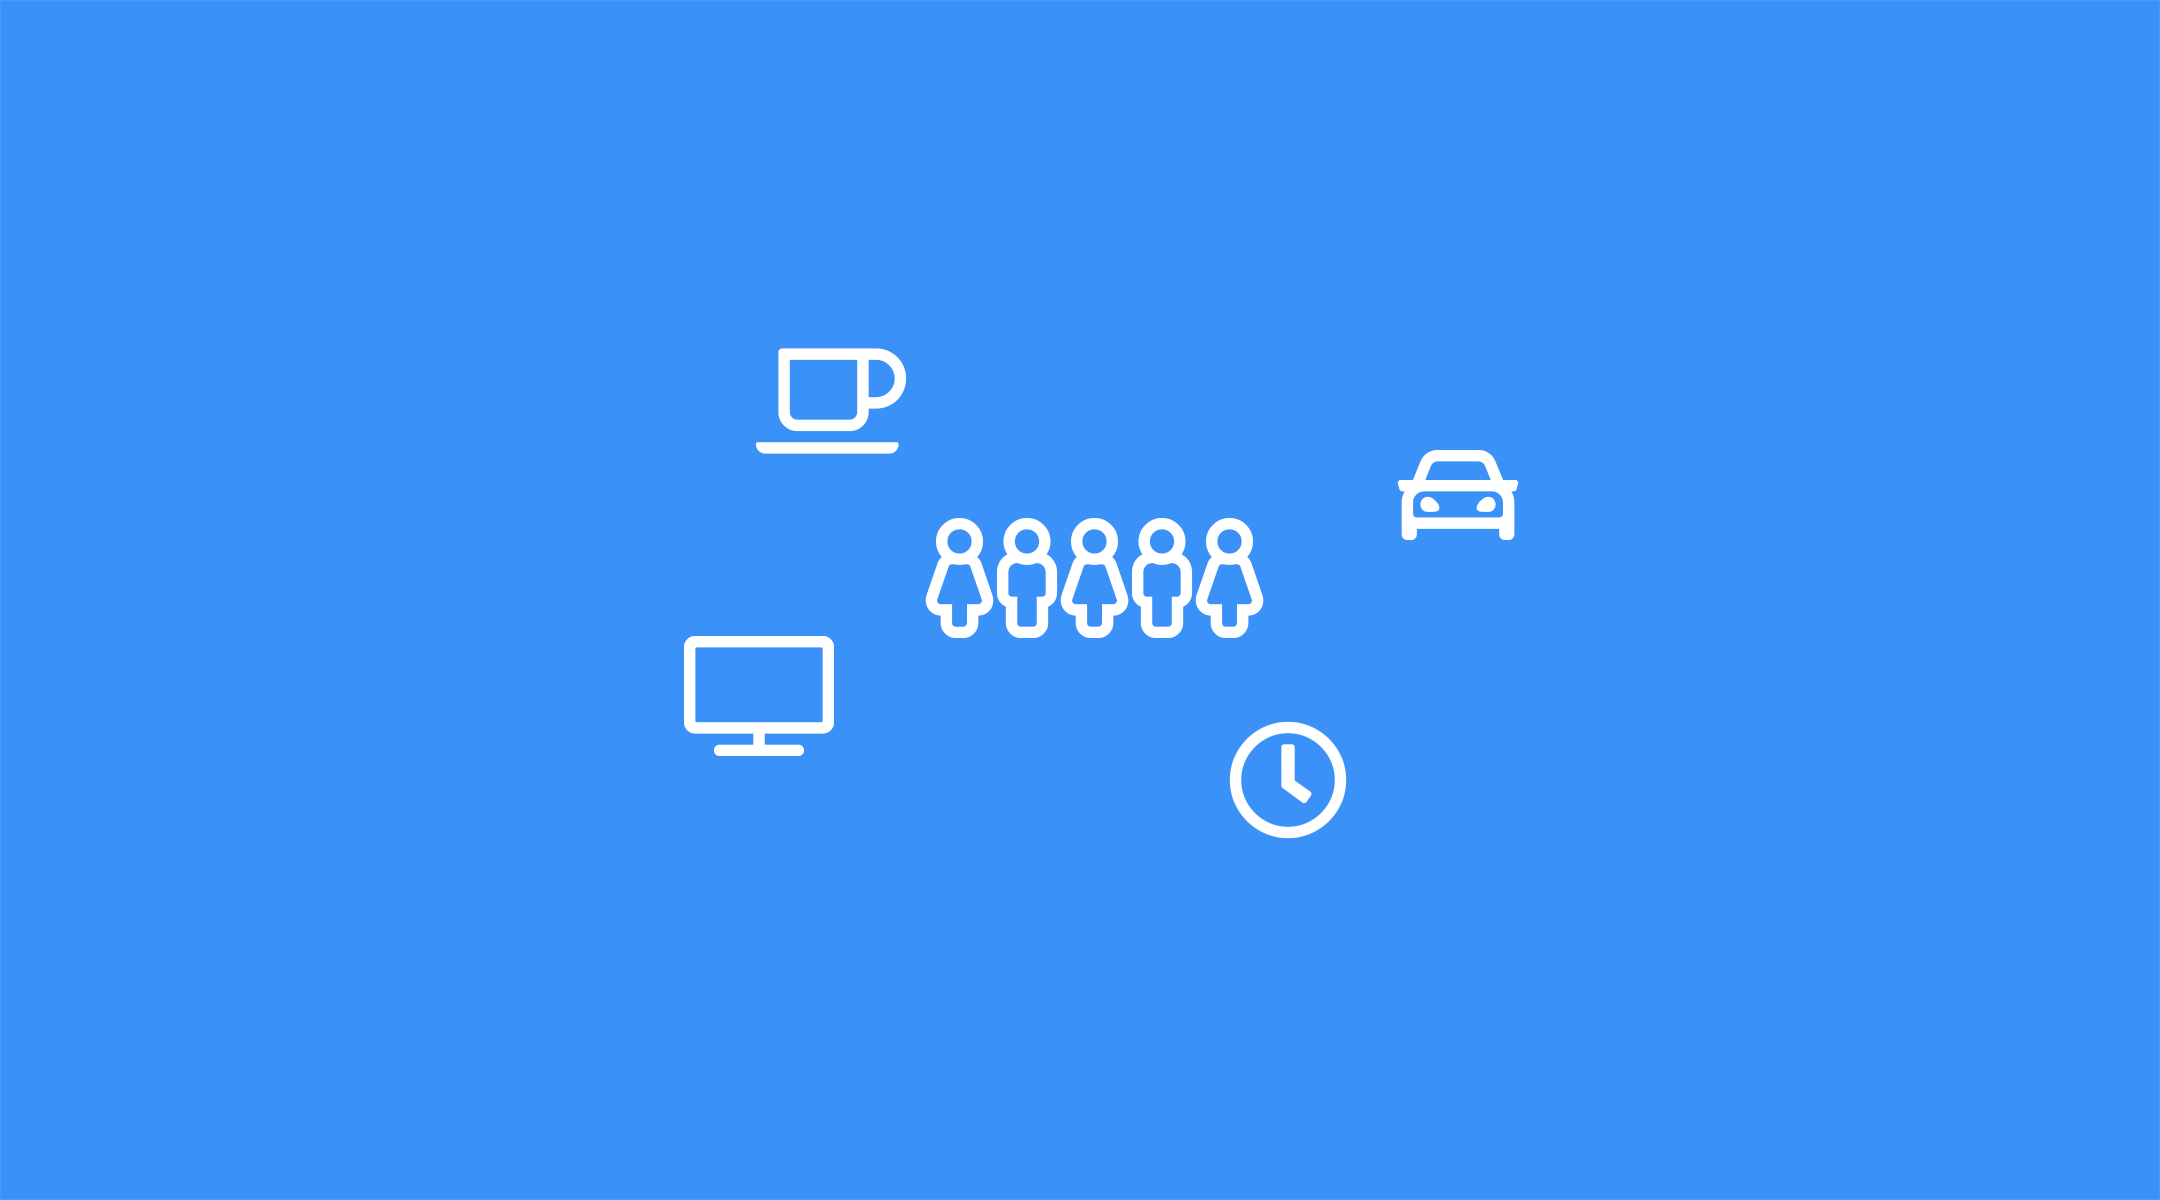 symbols for office work on a blue background